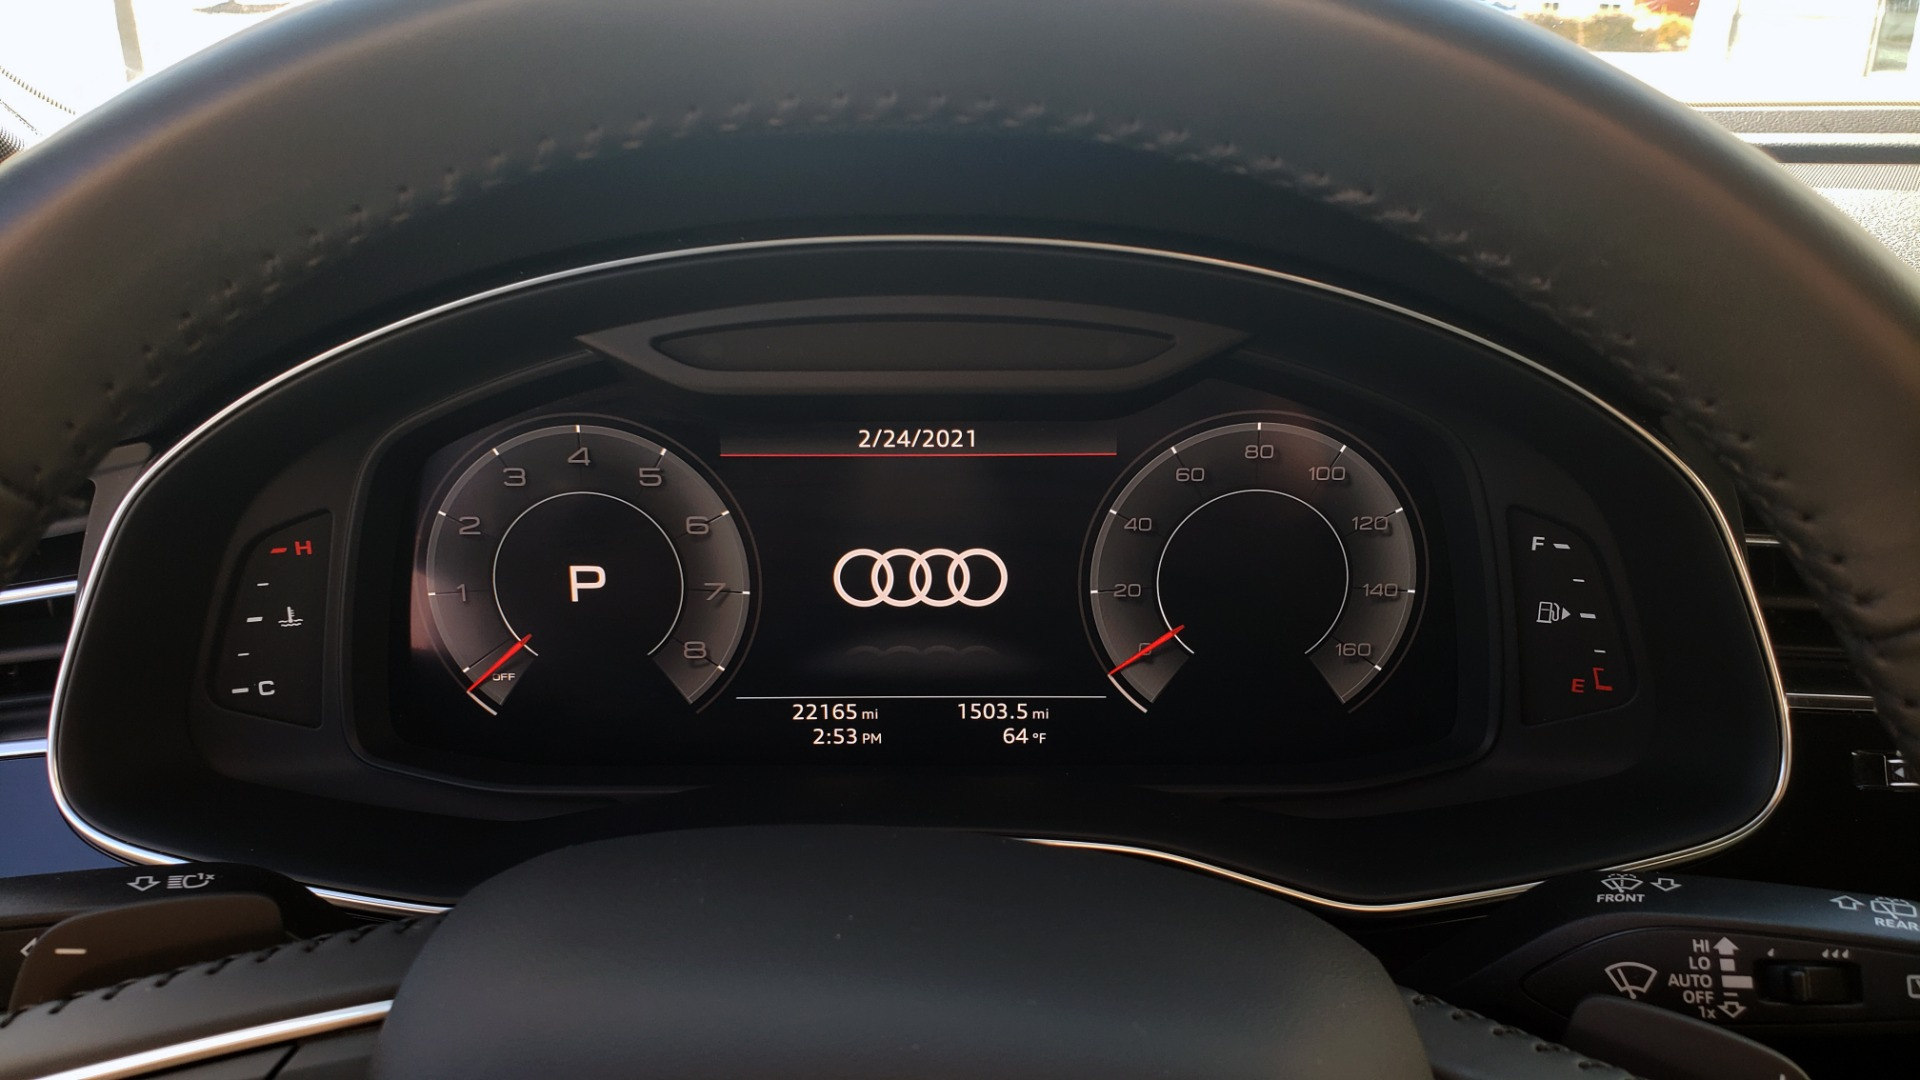 Used 2020 Audi Q7 PREMIUM PLUS / NAV / SUNROOF / 3-ROW / REARVIEW for sale Sold at Formula Imports in Charlotte NC 28227 24